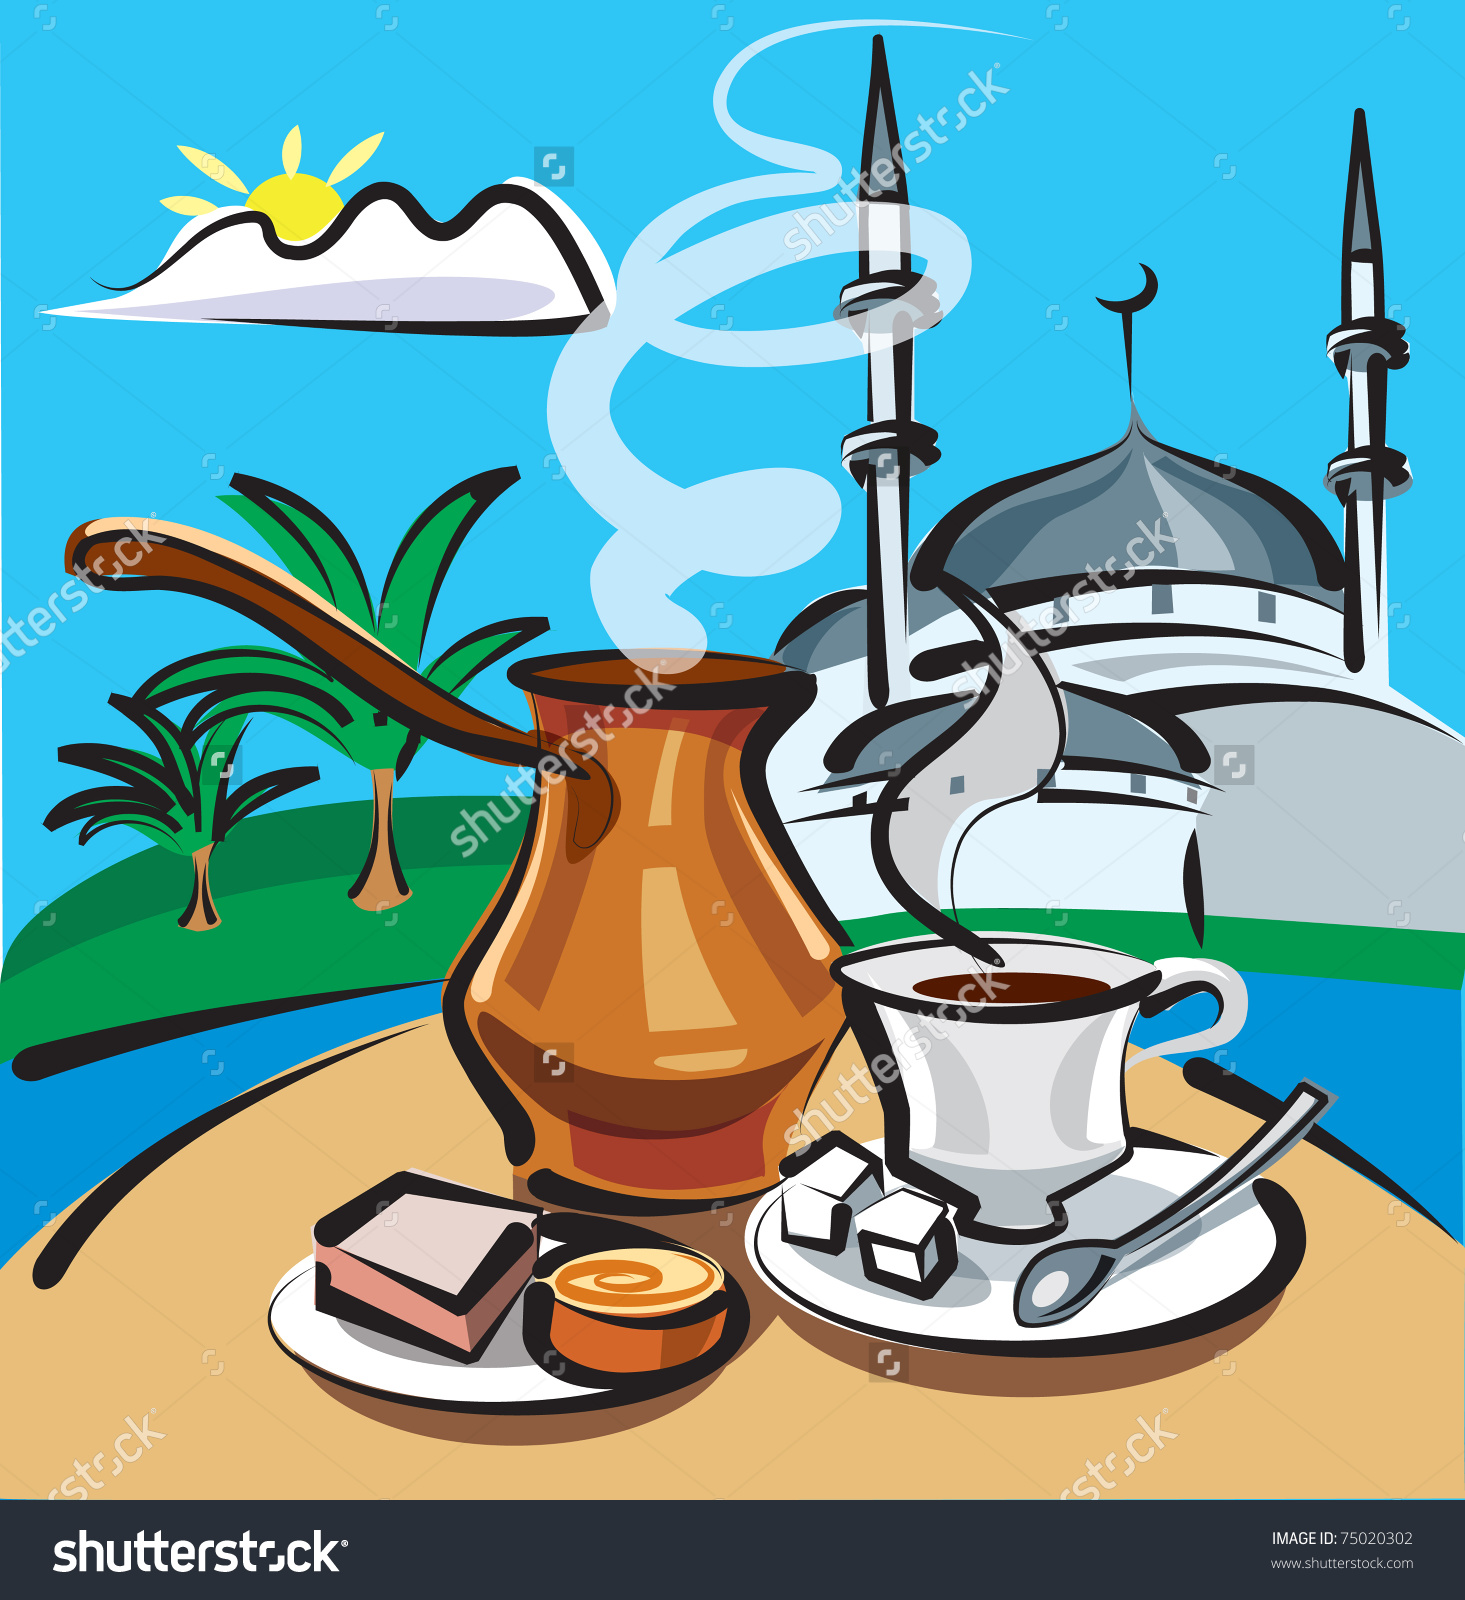 Istanbul clipart #19, Download drawings